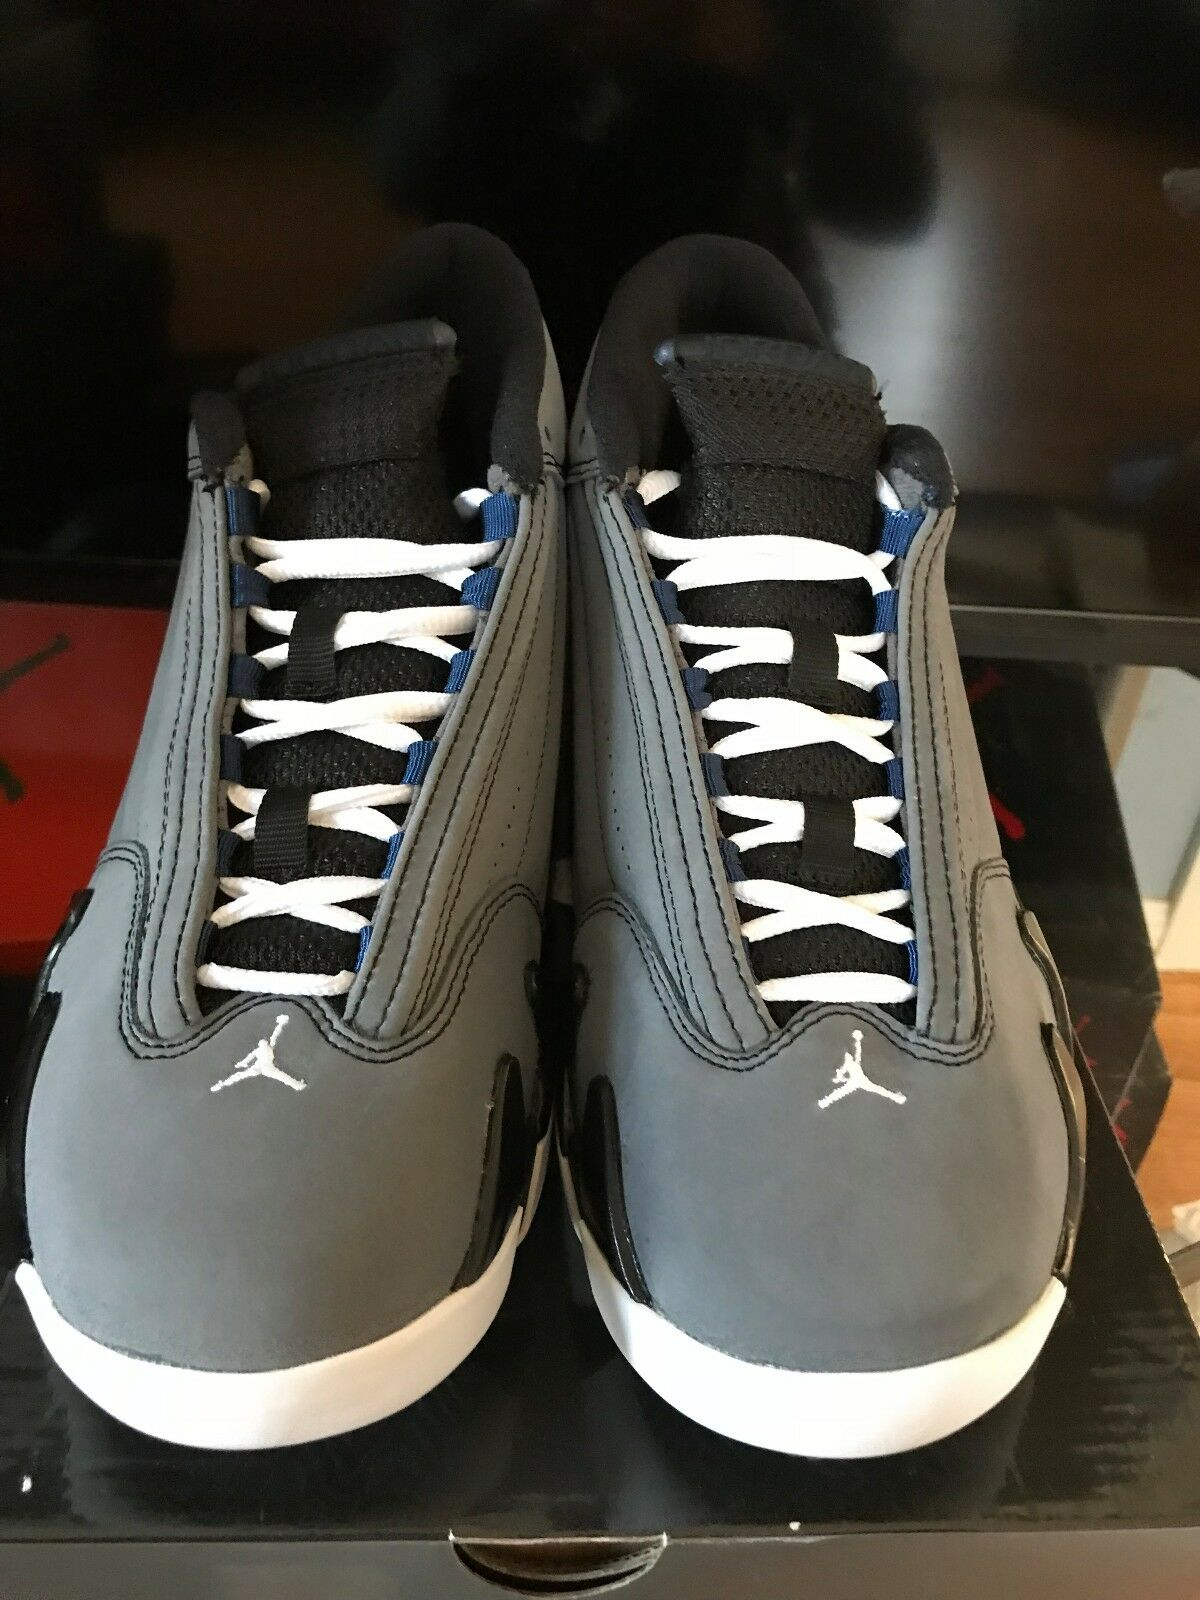 Nike Air Jordan XIV 14 Retro 311832-011 GRAPHITE WOLF GREY WHITE blueE BLACK 7.5